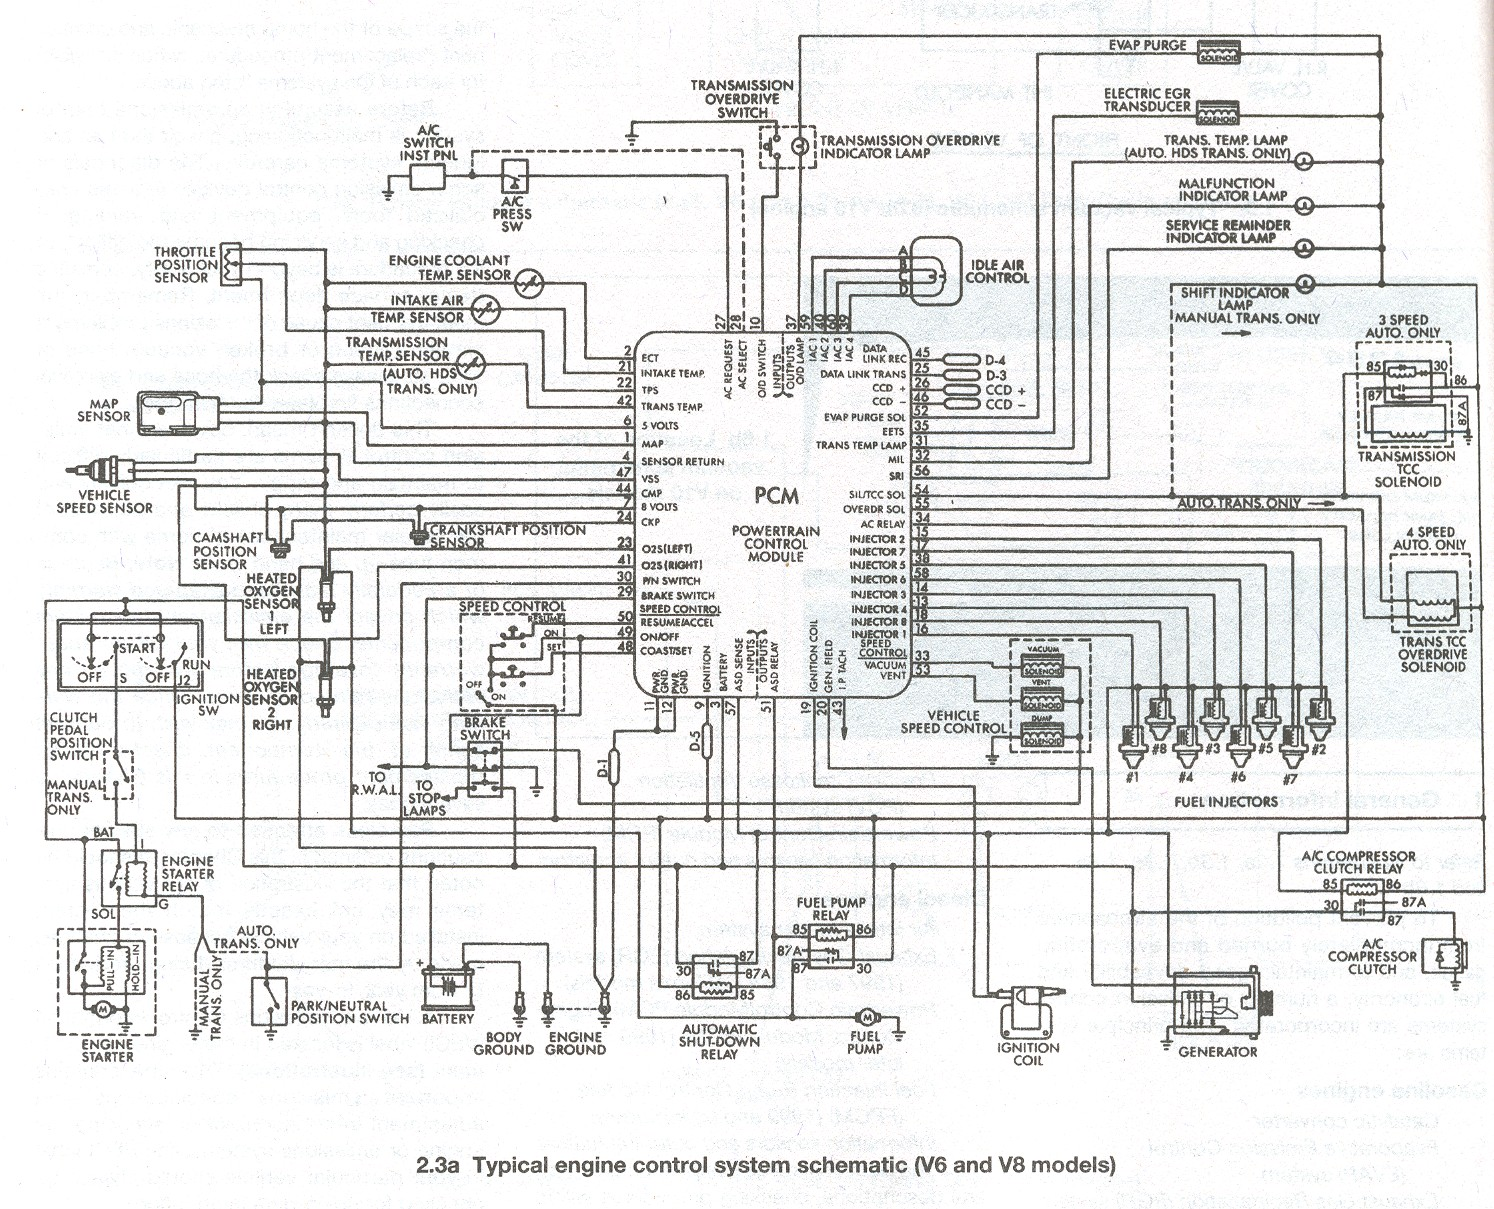 1970 dodge challenger wiring diagram  dodge  wiring